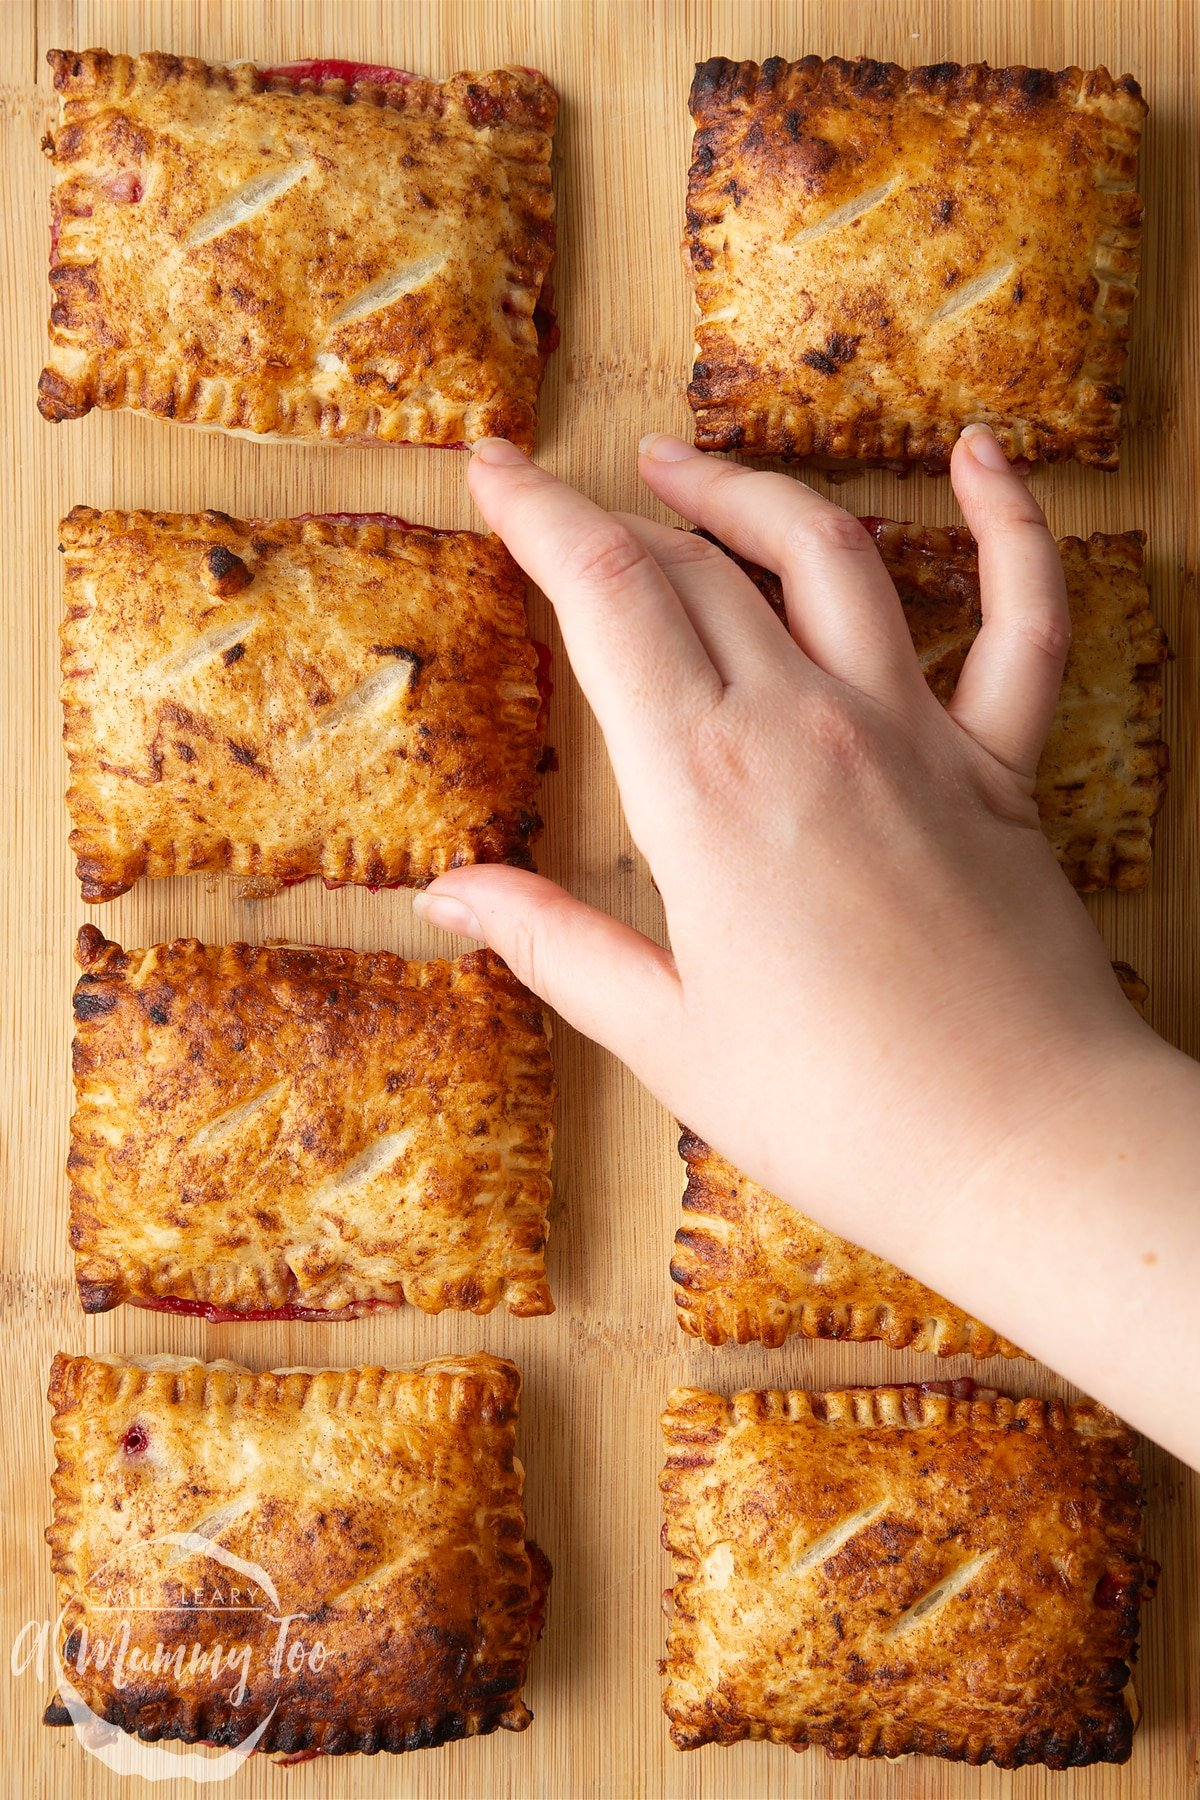 Eight plum pastries on a wooden board. A hand reaches to take one.